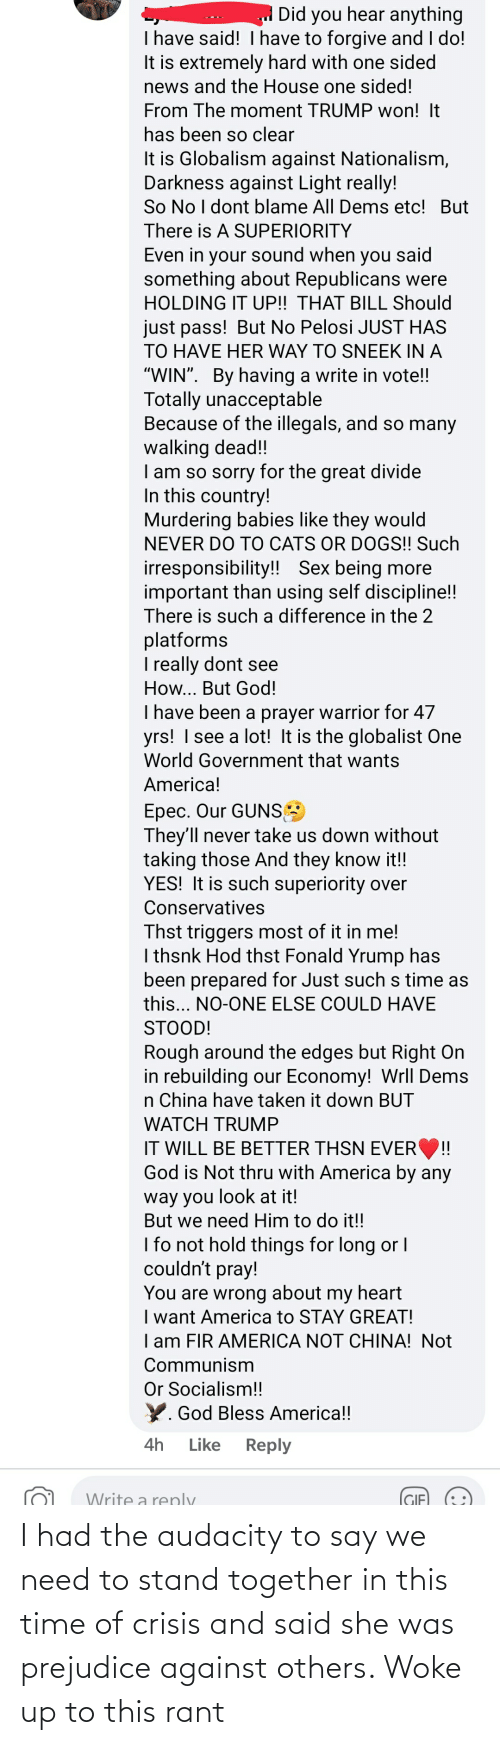 prejudice: I had the audacity to say we need to stand together in this time of crisis and said she was prejudice against others. Woke up to this rant